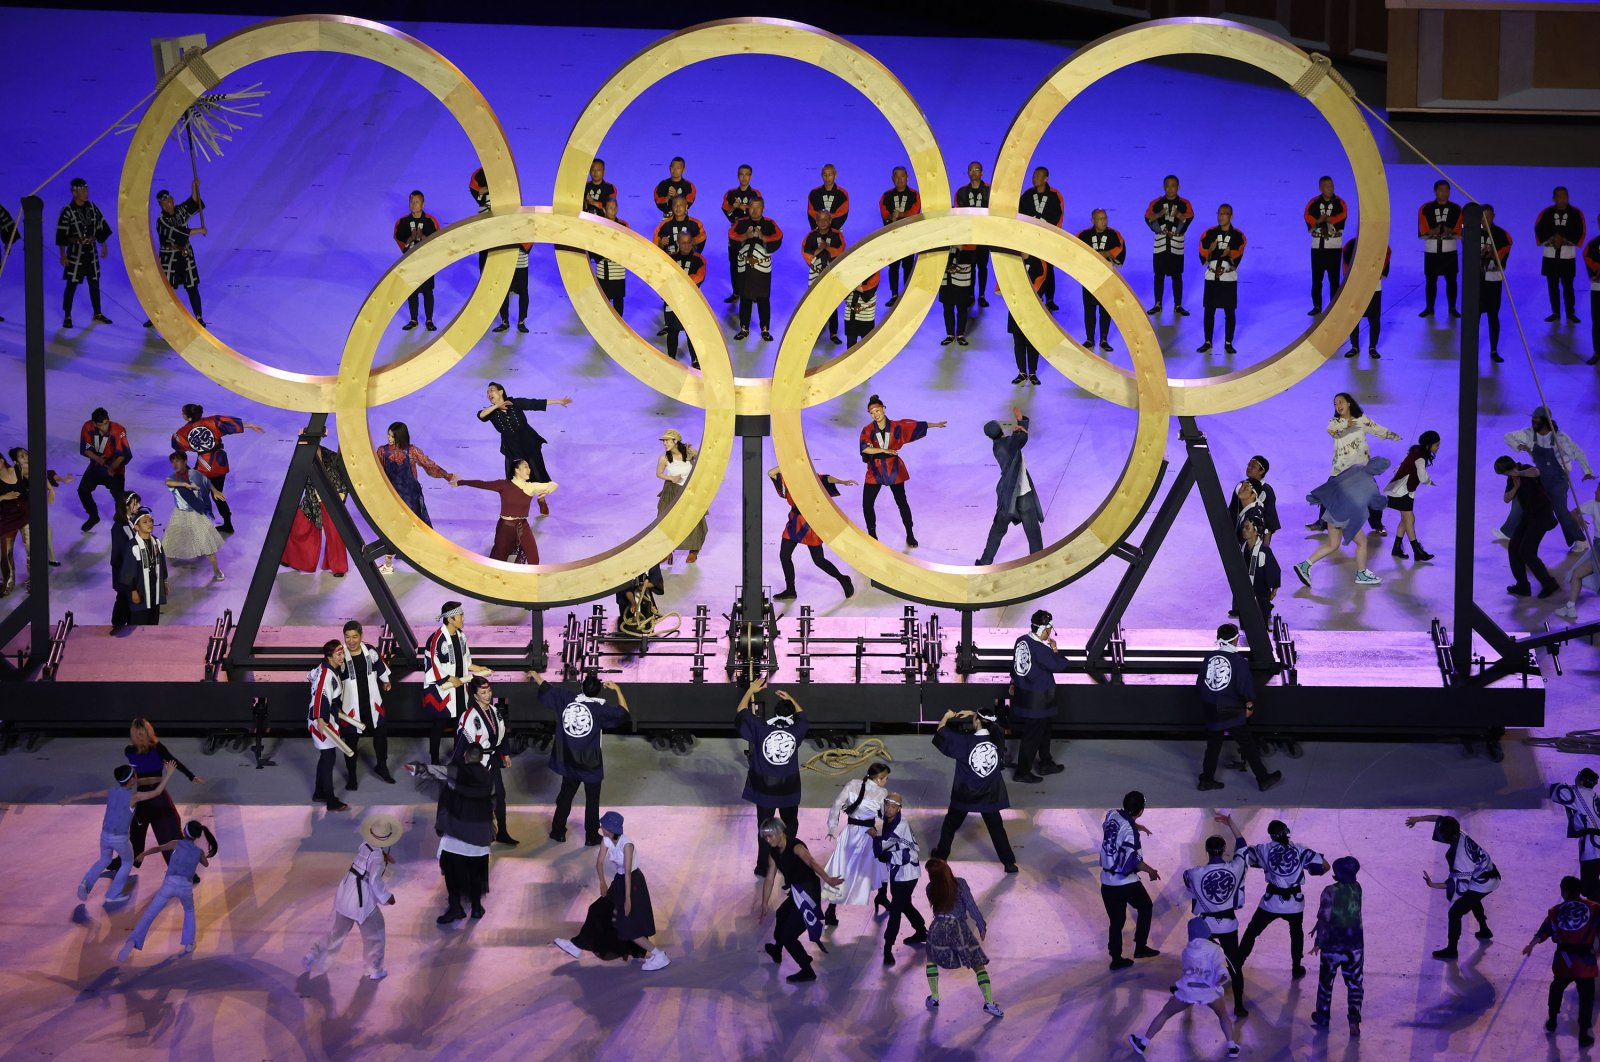 Performers are seen with the Olympics rings during the opening ceremony of the Tokyo 2020 Olympic Games, at the Olympic Stadium, in Tokyo, Japan, July 23, 2021. (Reuters Photo)